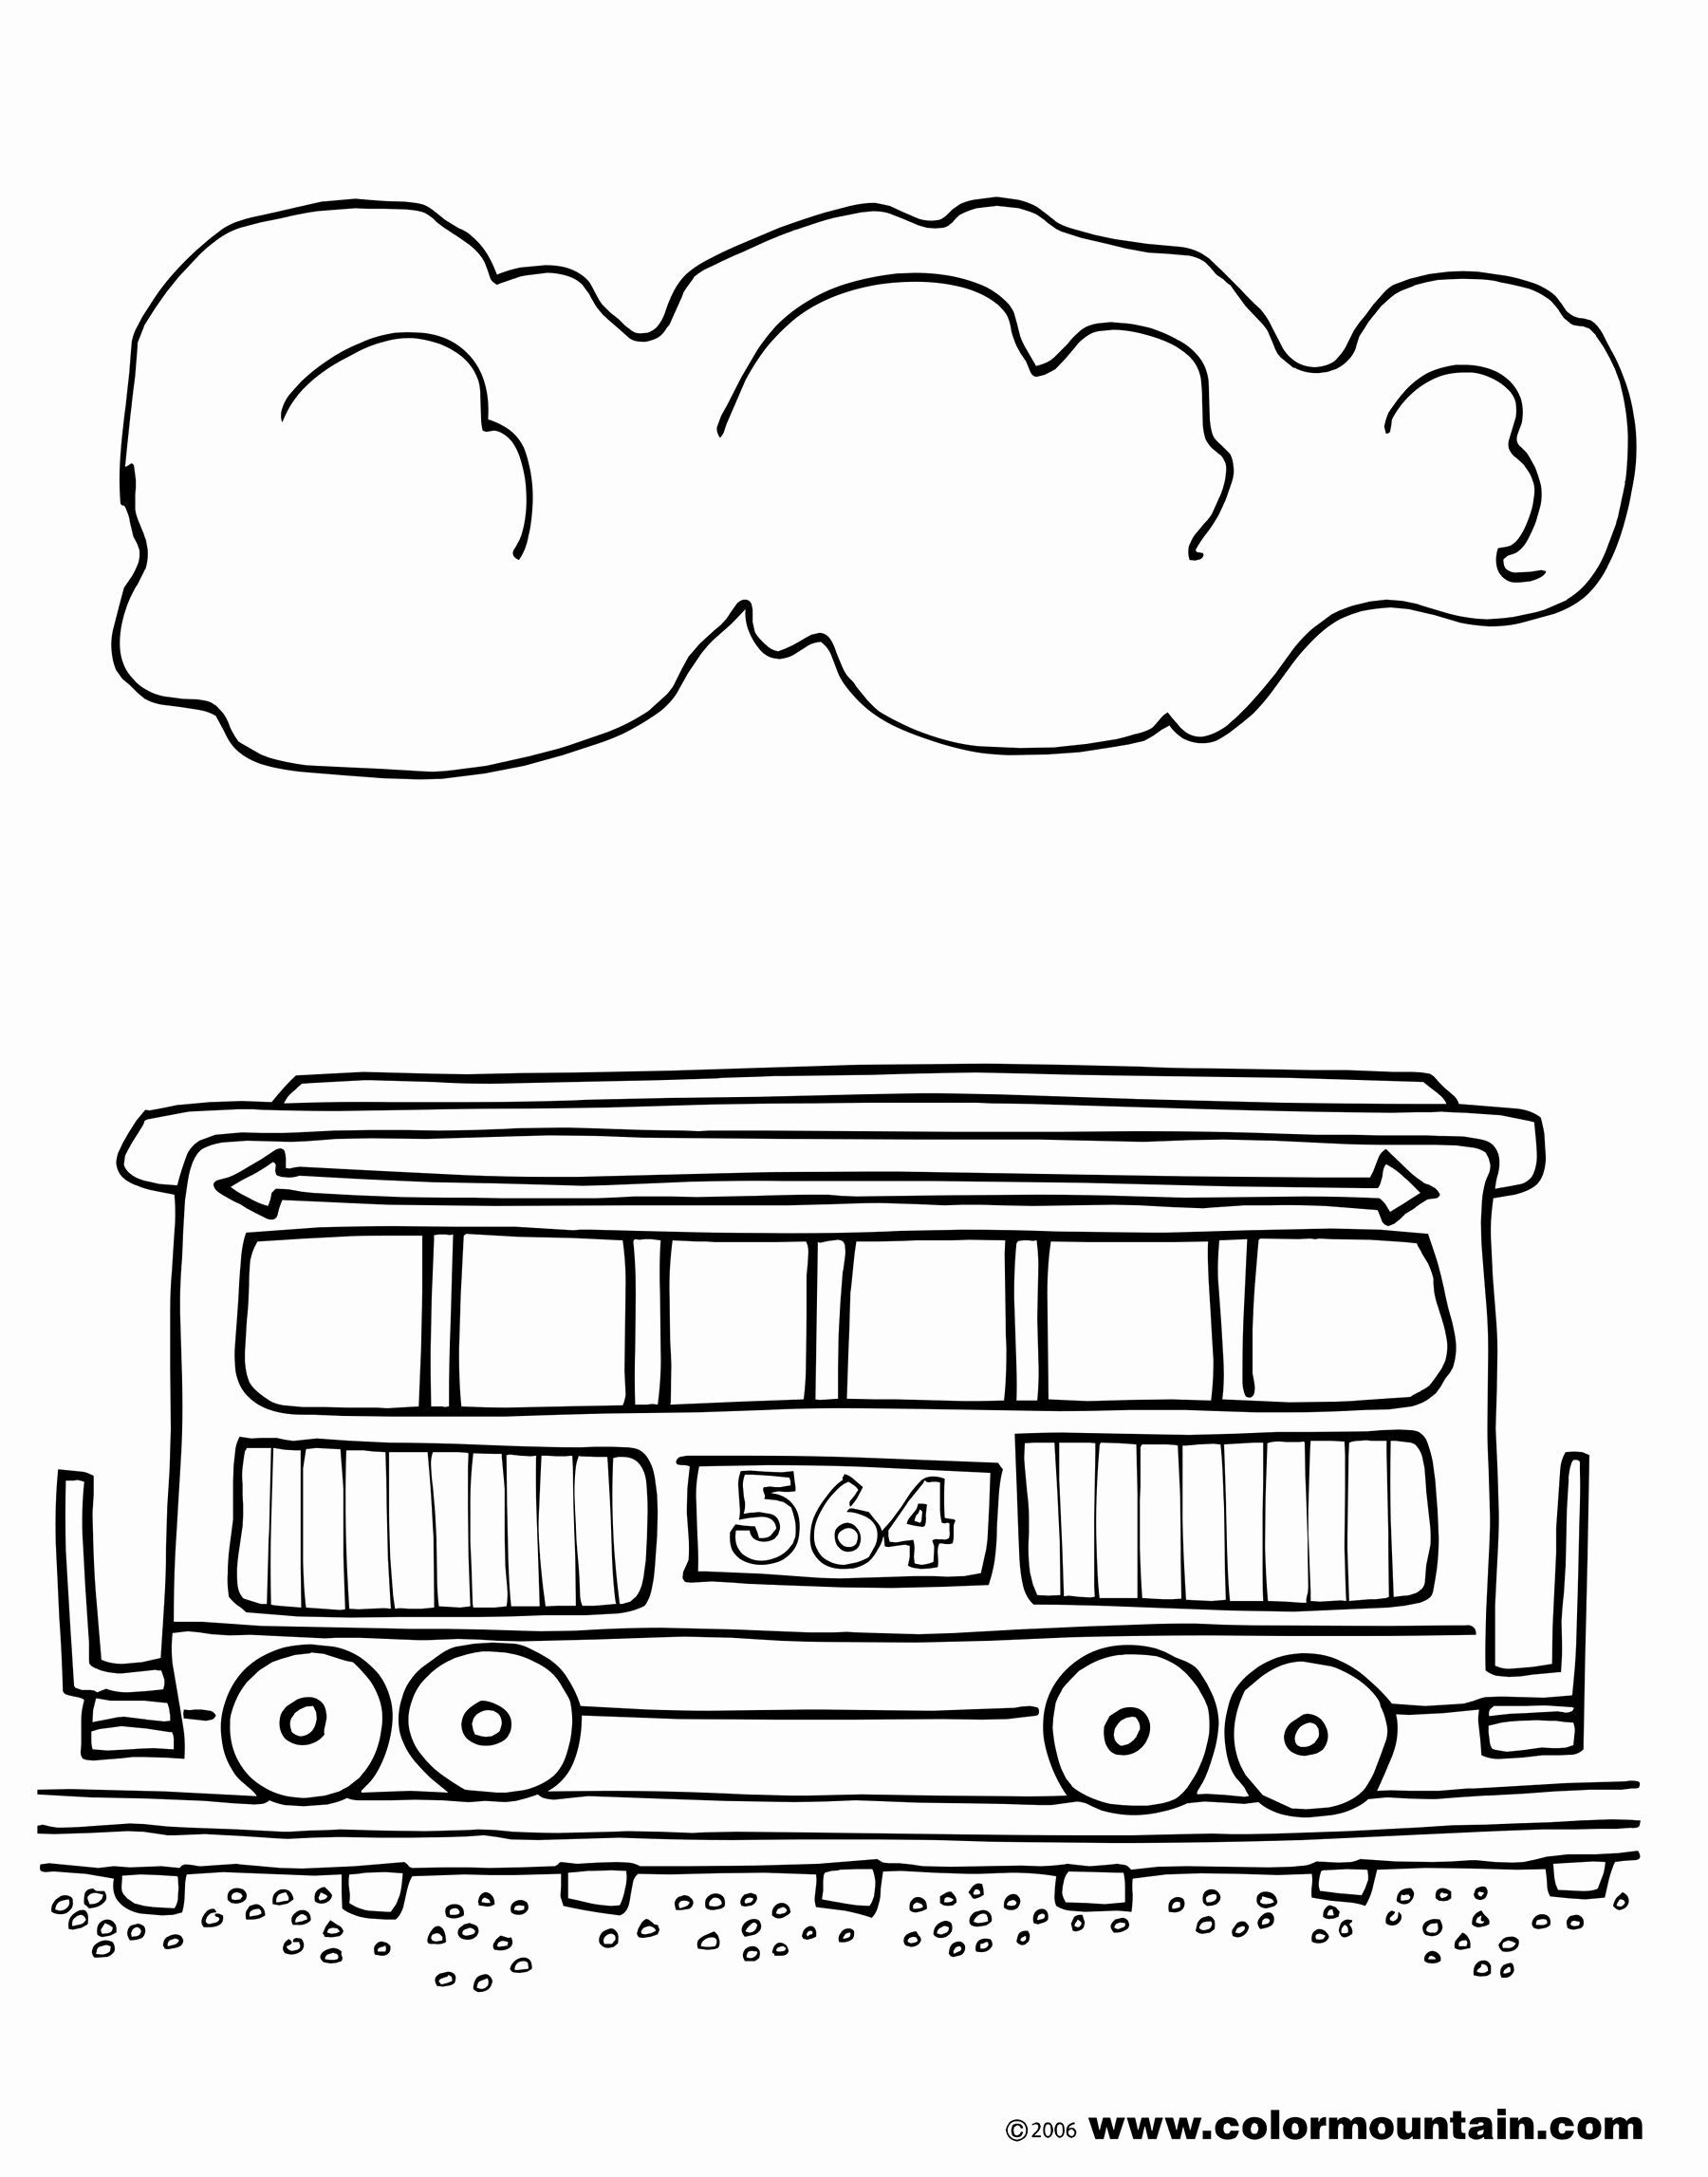 Box Car Kids Coloring Pages Coloring Pages Legotrain In 2020 Race Car Coloring Pages Cars Coloring Pages Coloring Pages For Kids